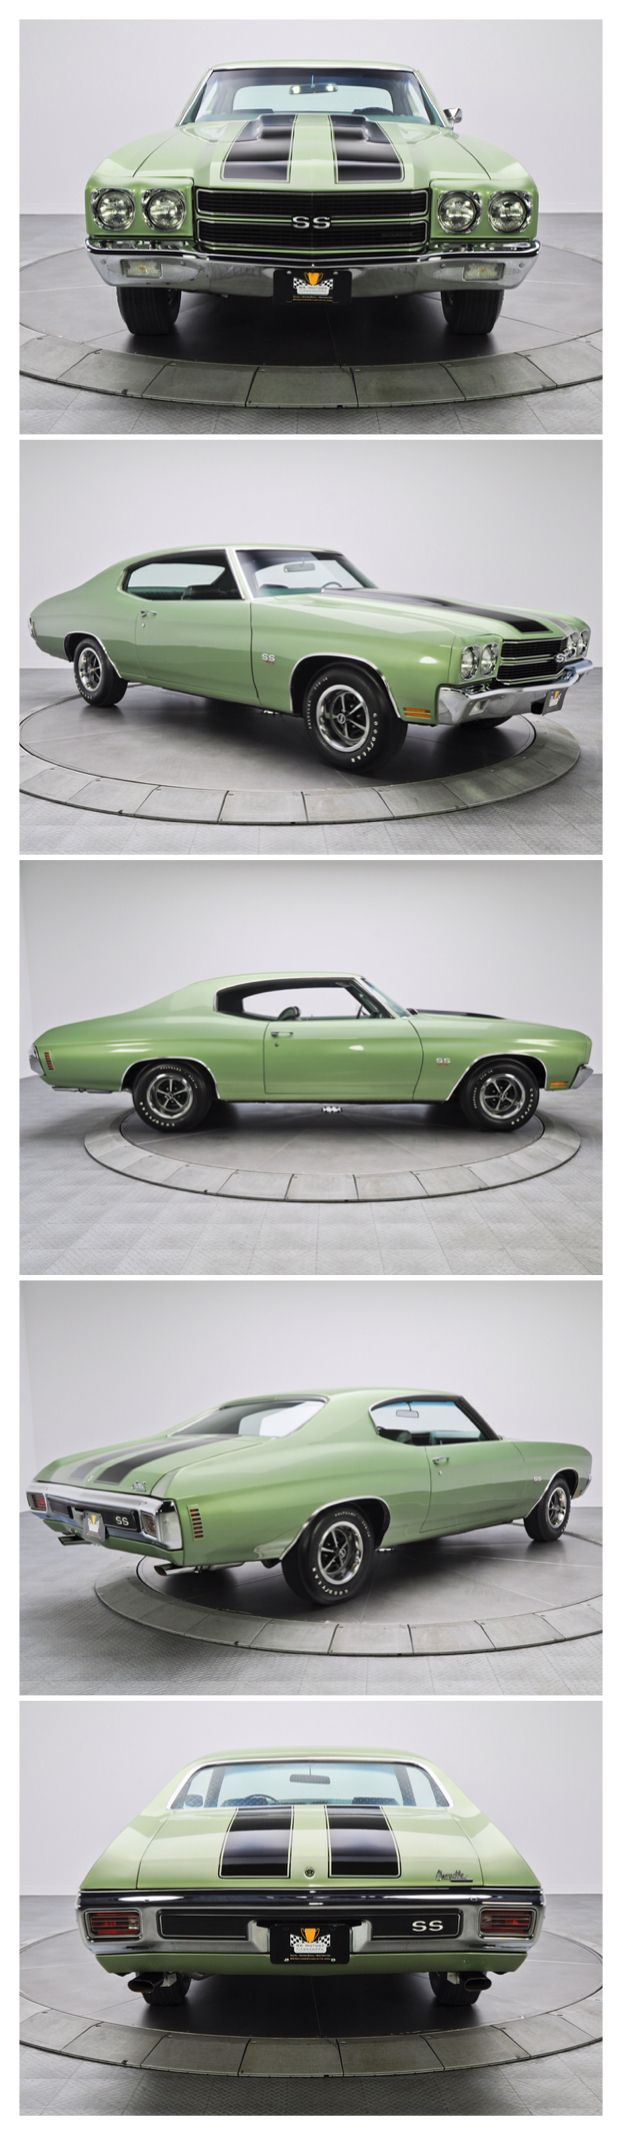 1970 Chevy Chevelle SS...brought to you by #carinsuranceagents at #Houseofinsurance Eugene, Oregon